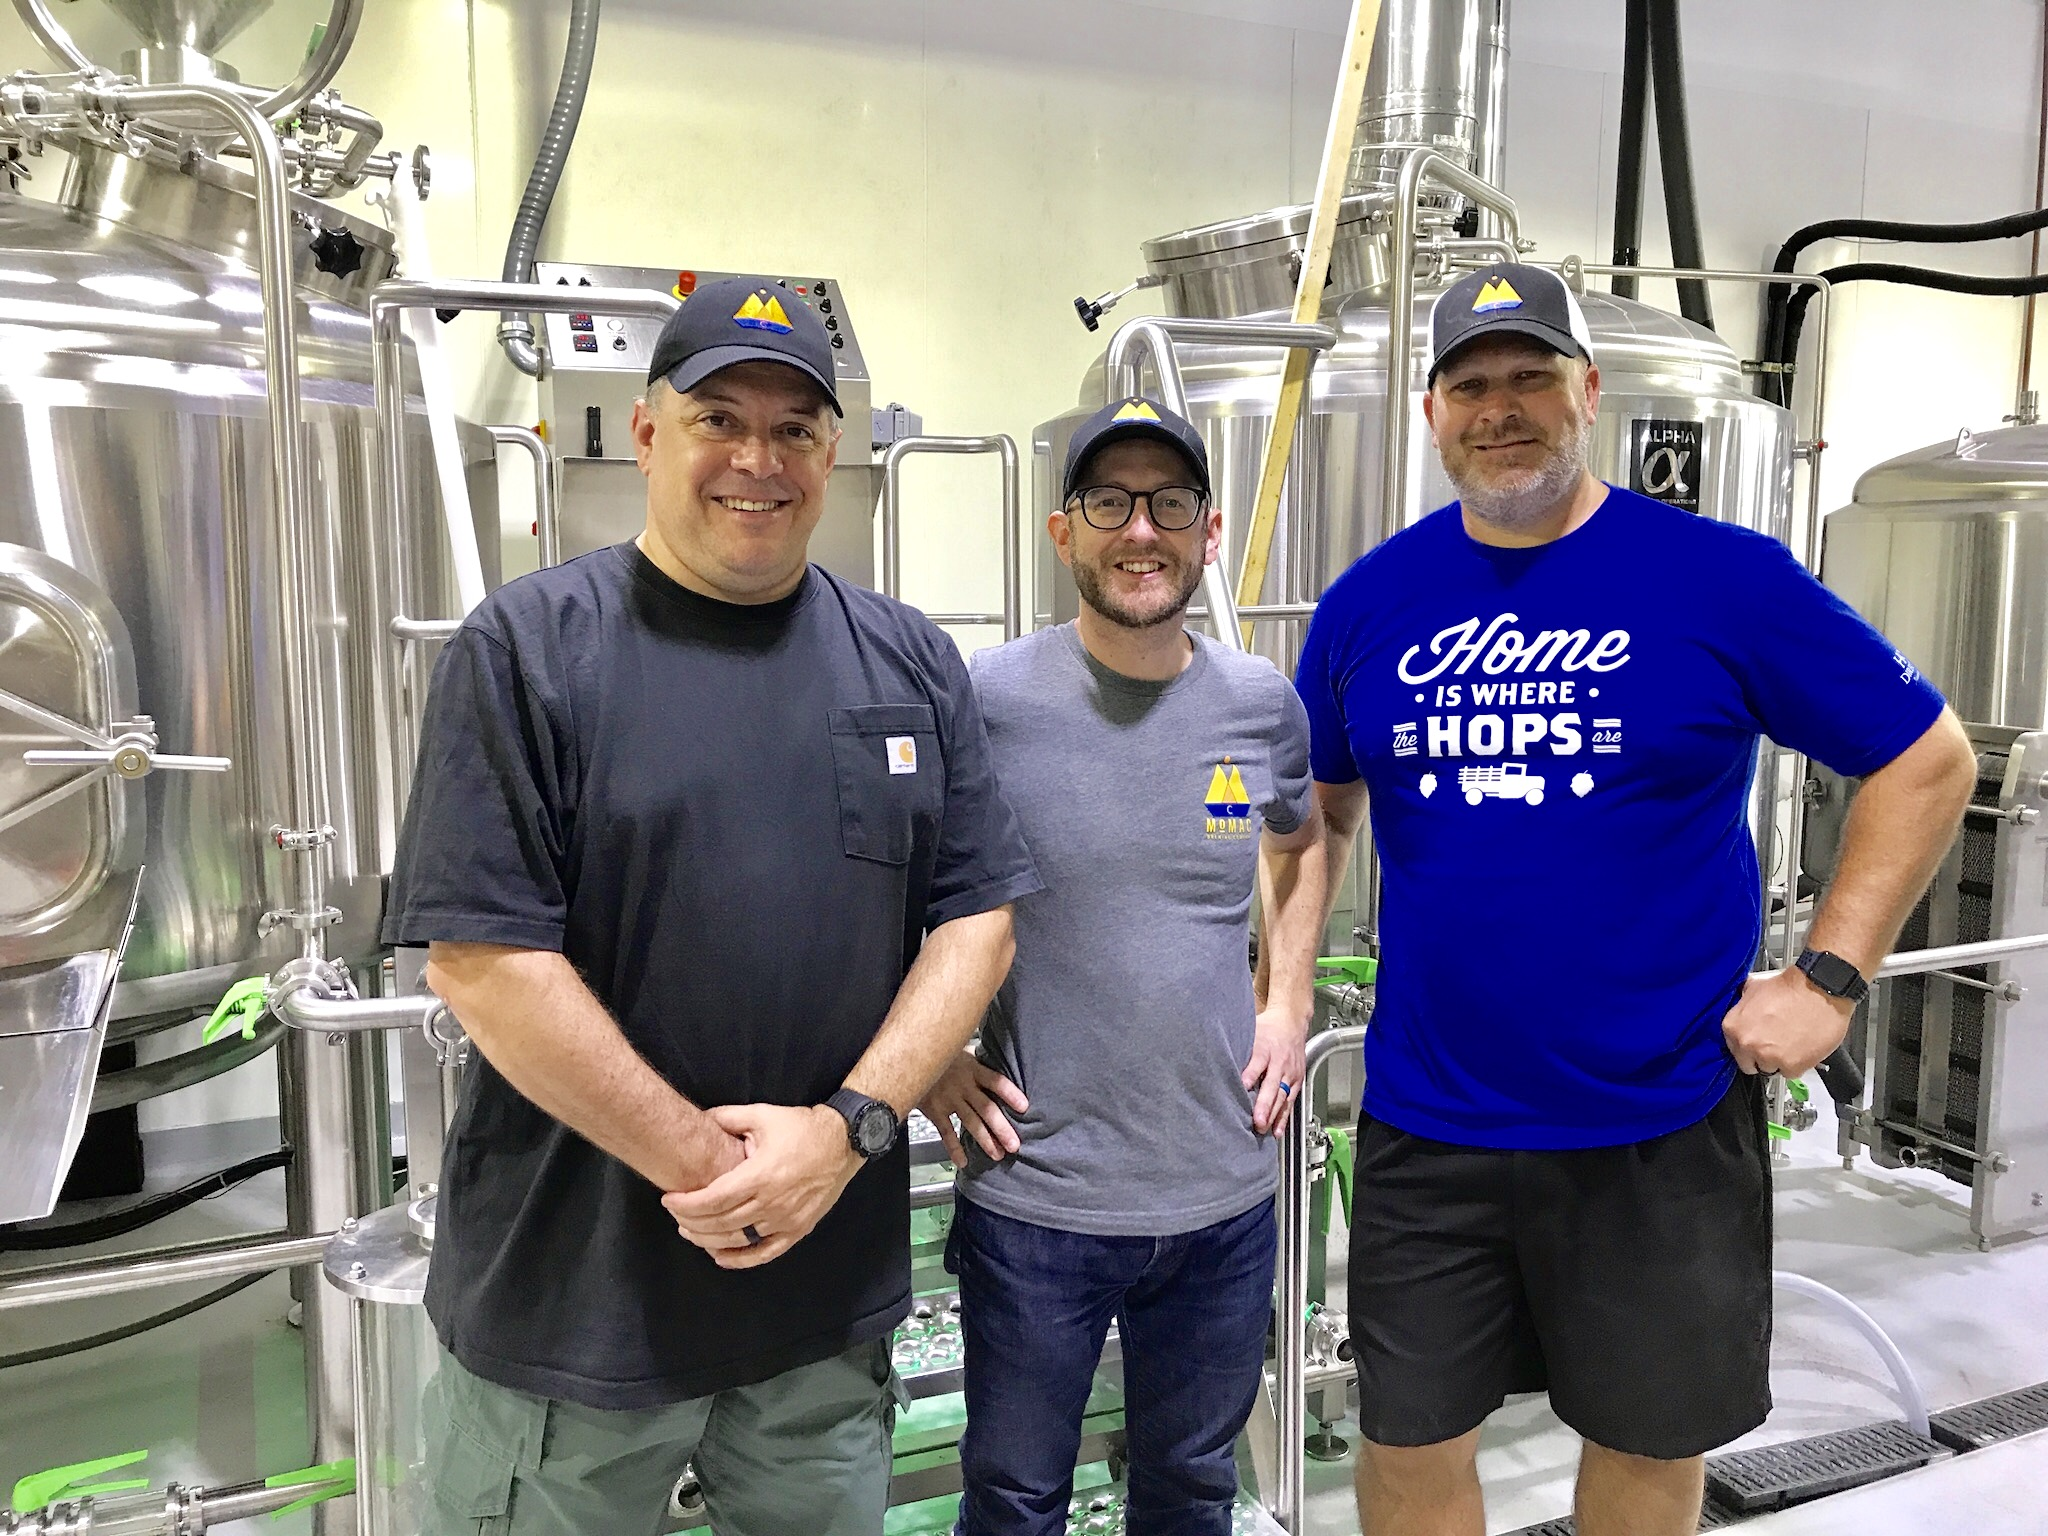 Seize the Mo at MoMac Brewing Company, Portsmouth's New Craft Brewery